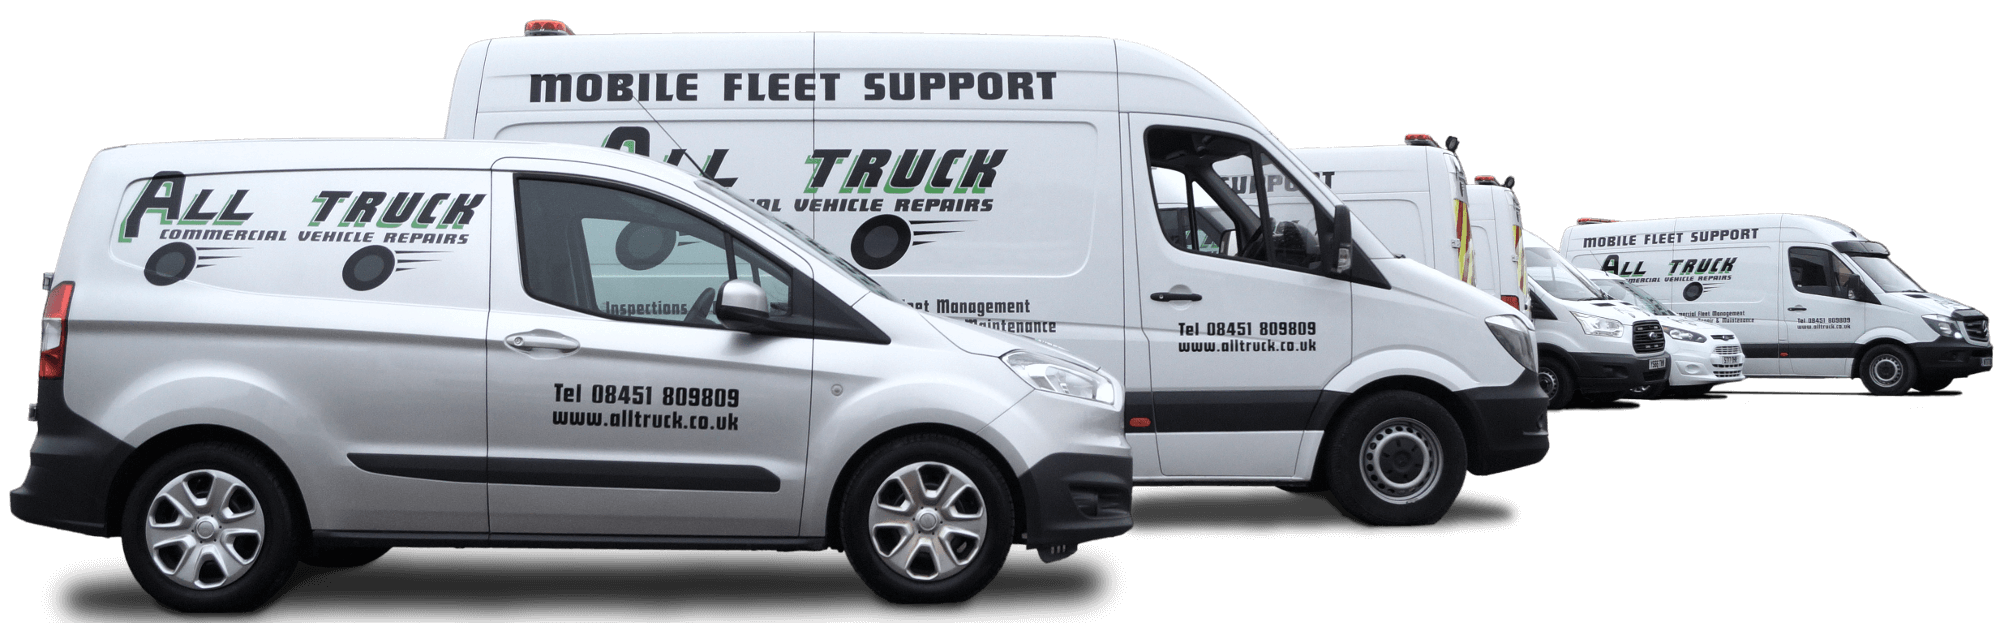 Alltruck commercial repairers mobile support cut resized